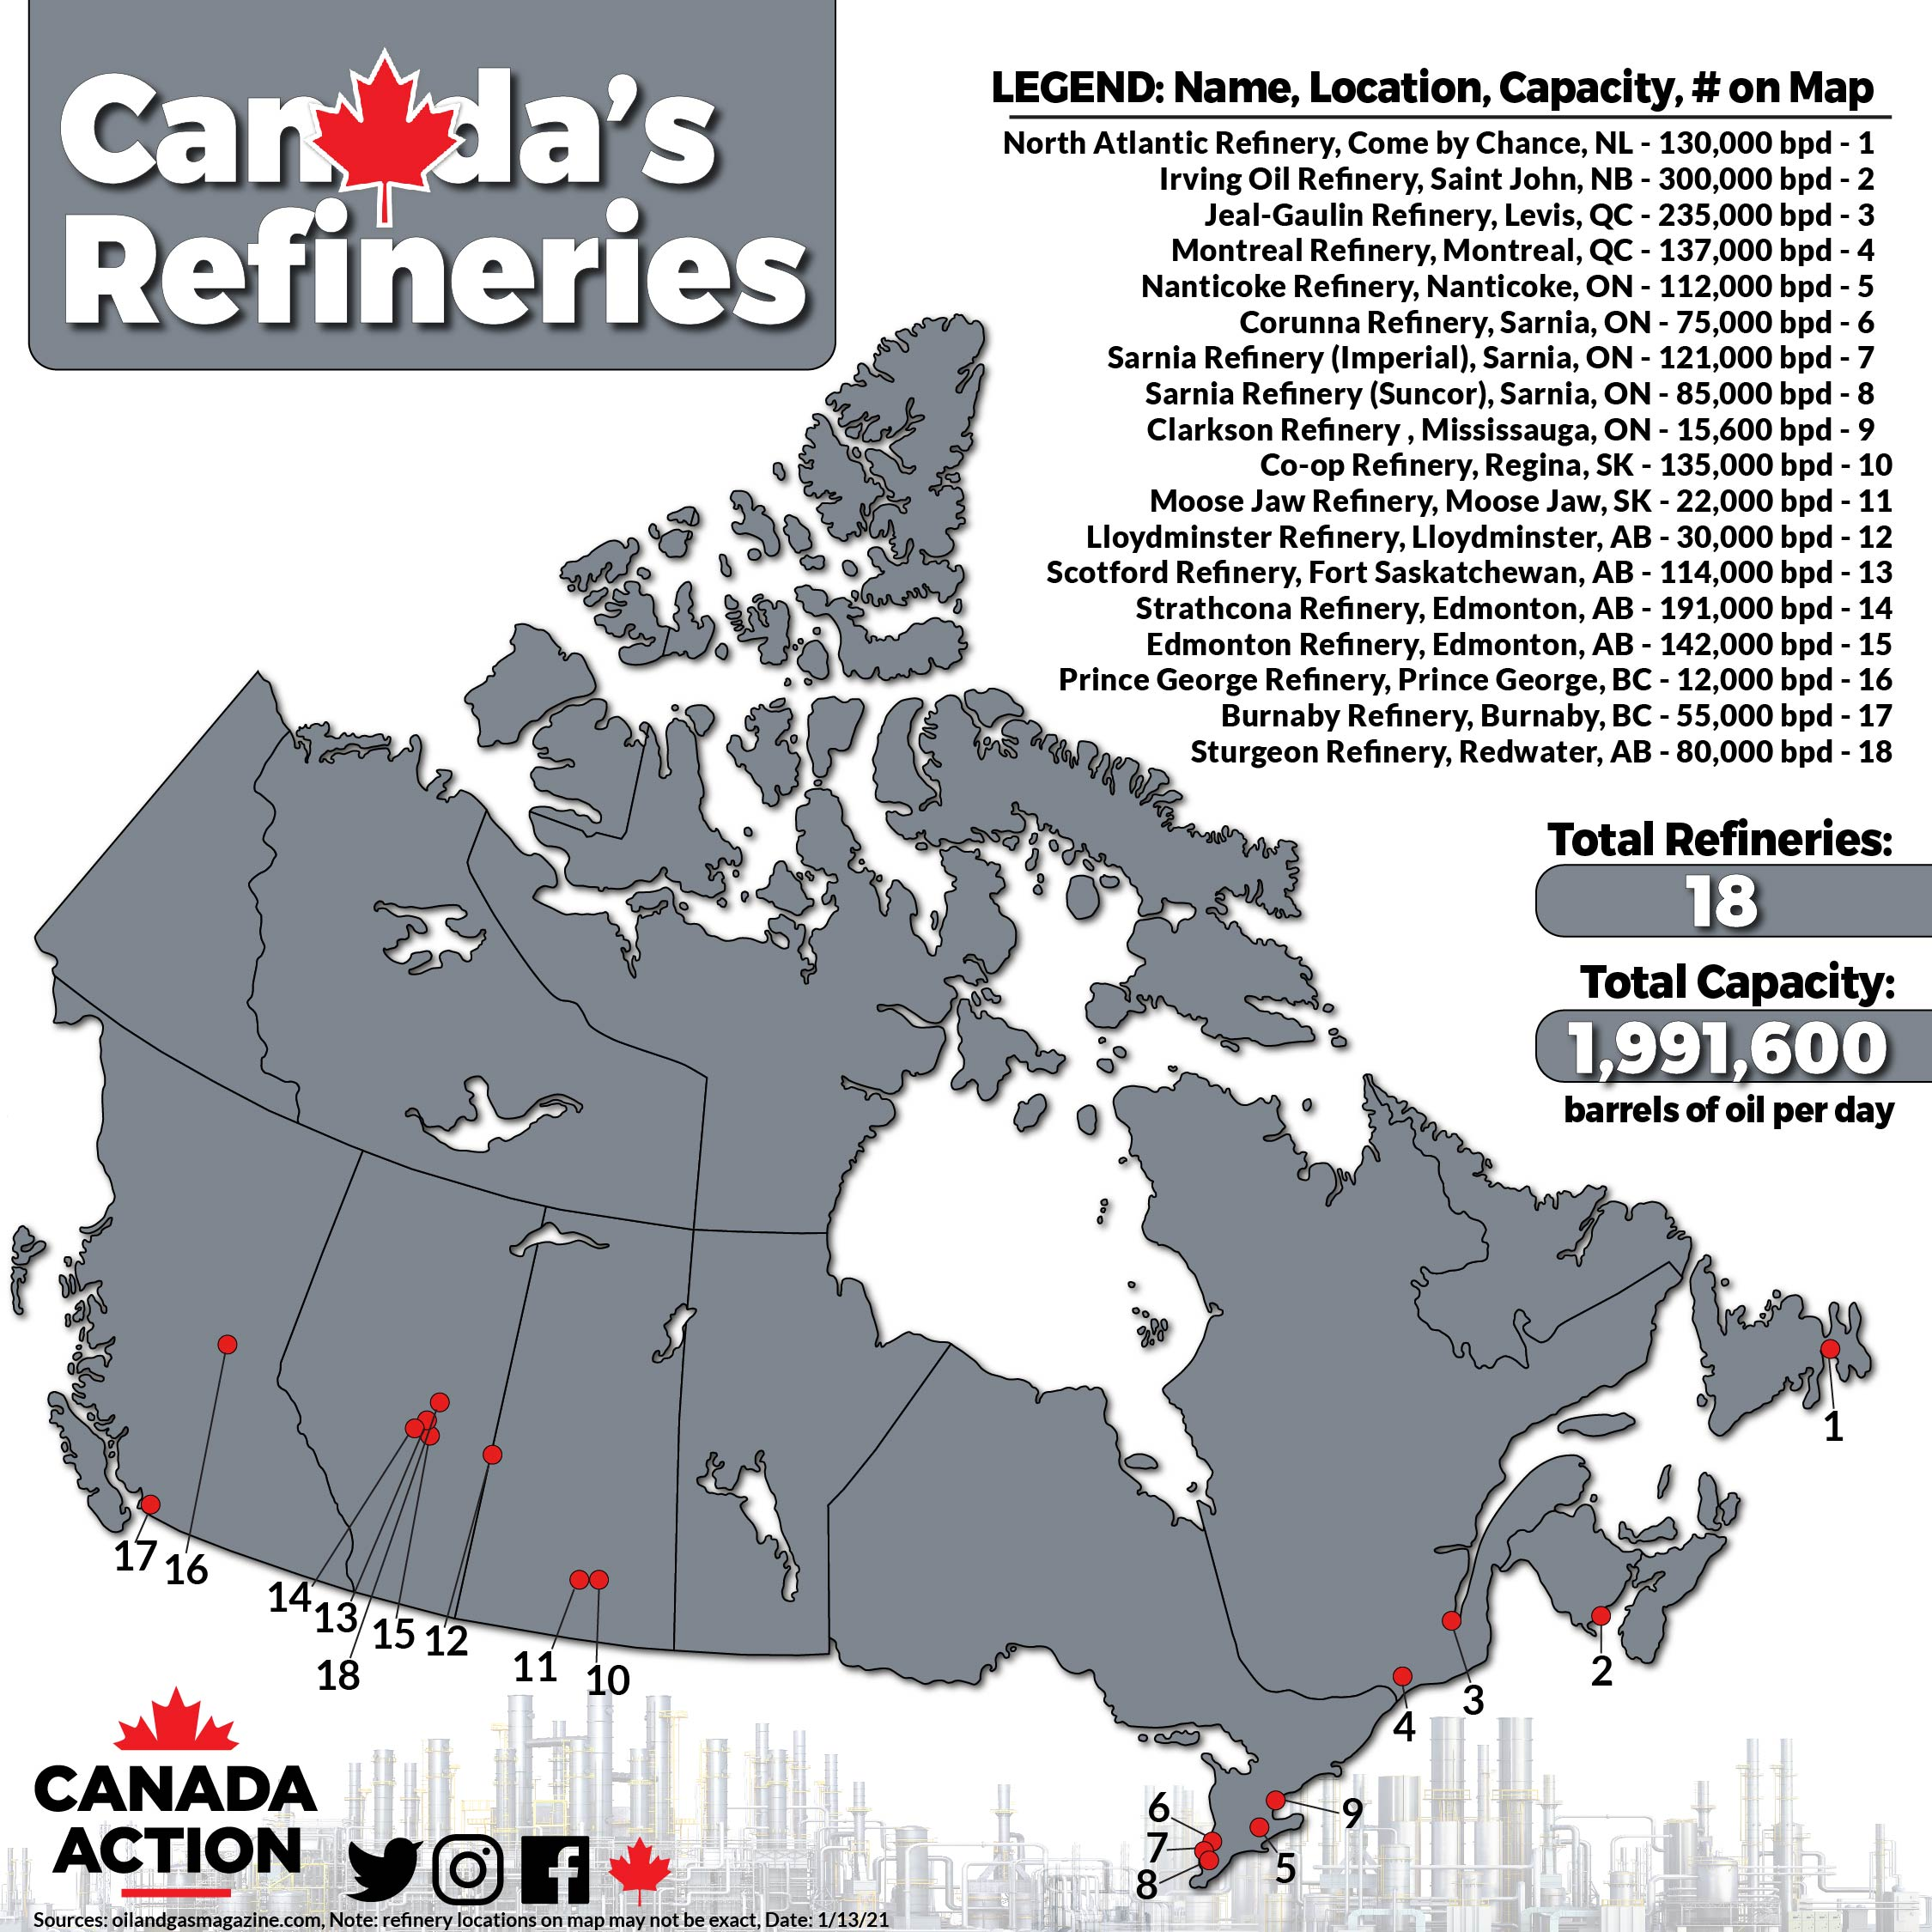 Map of Refineries in Canada